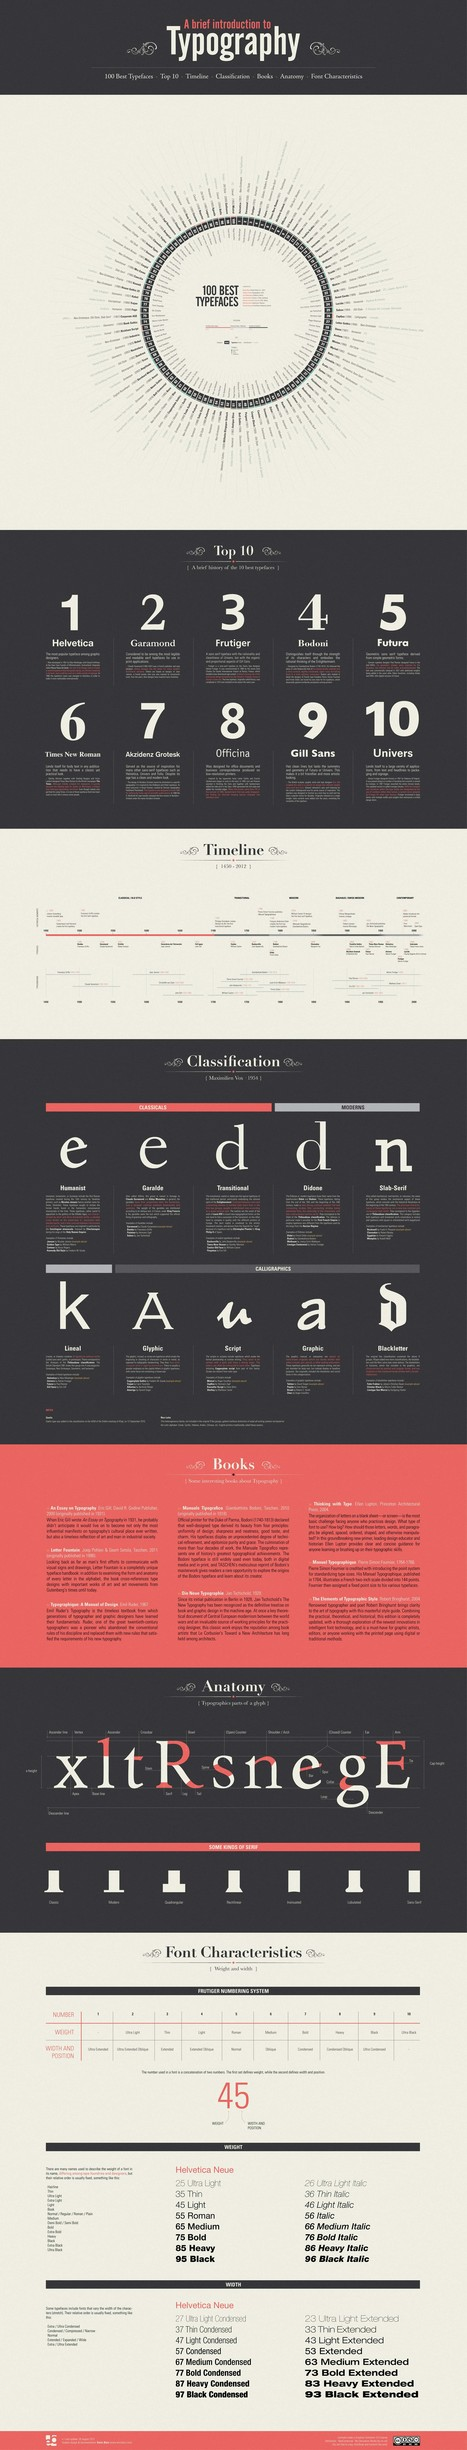 A Brief Introduction to Typography – Infographic | Communication design | Scoop.it